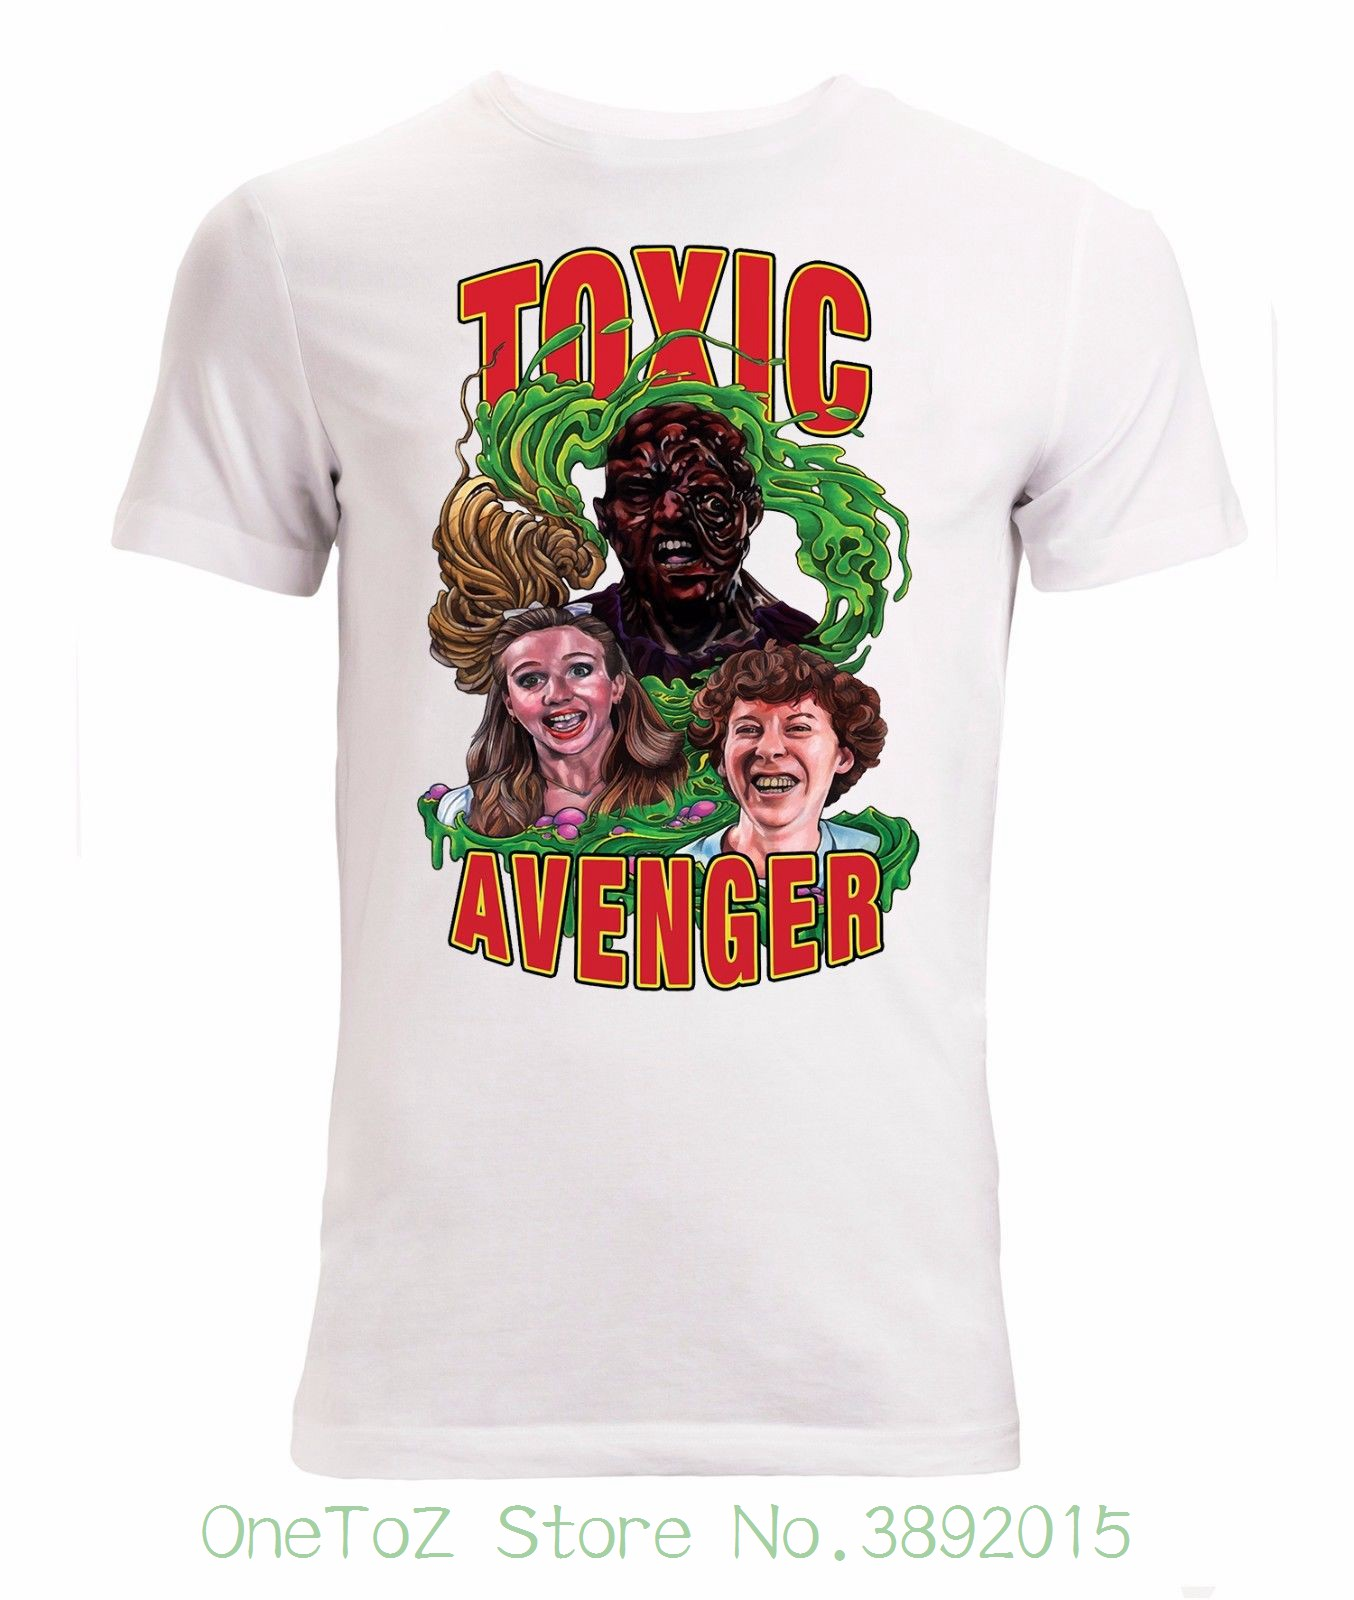 49dddf7ae47 Normal Short Sleeve Cotton T Shirts Toxic Avenger Classic Cult Movie  Artwork Men  S T Shirt White-in T-Shirts from Men s Clothing on  Aliexpress.com ...